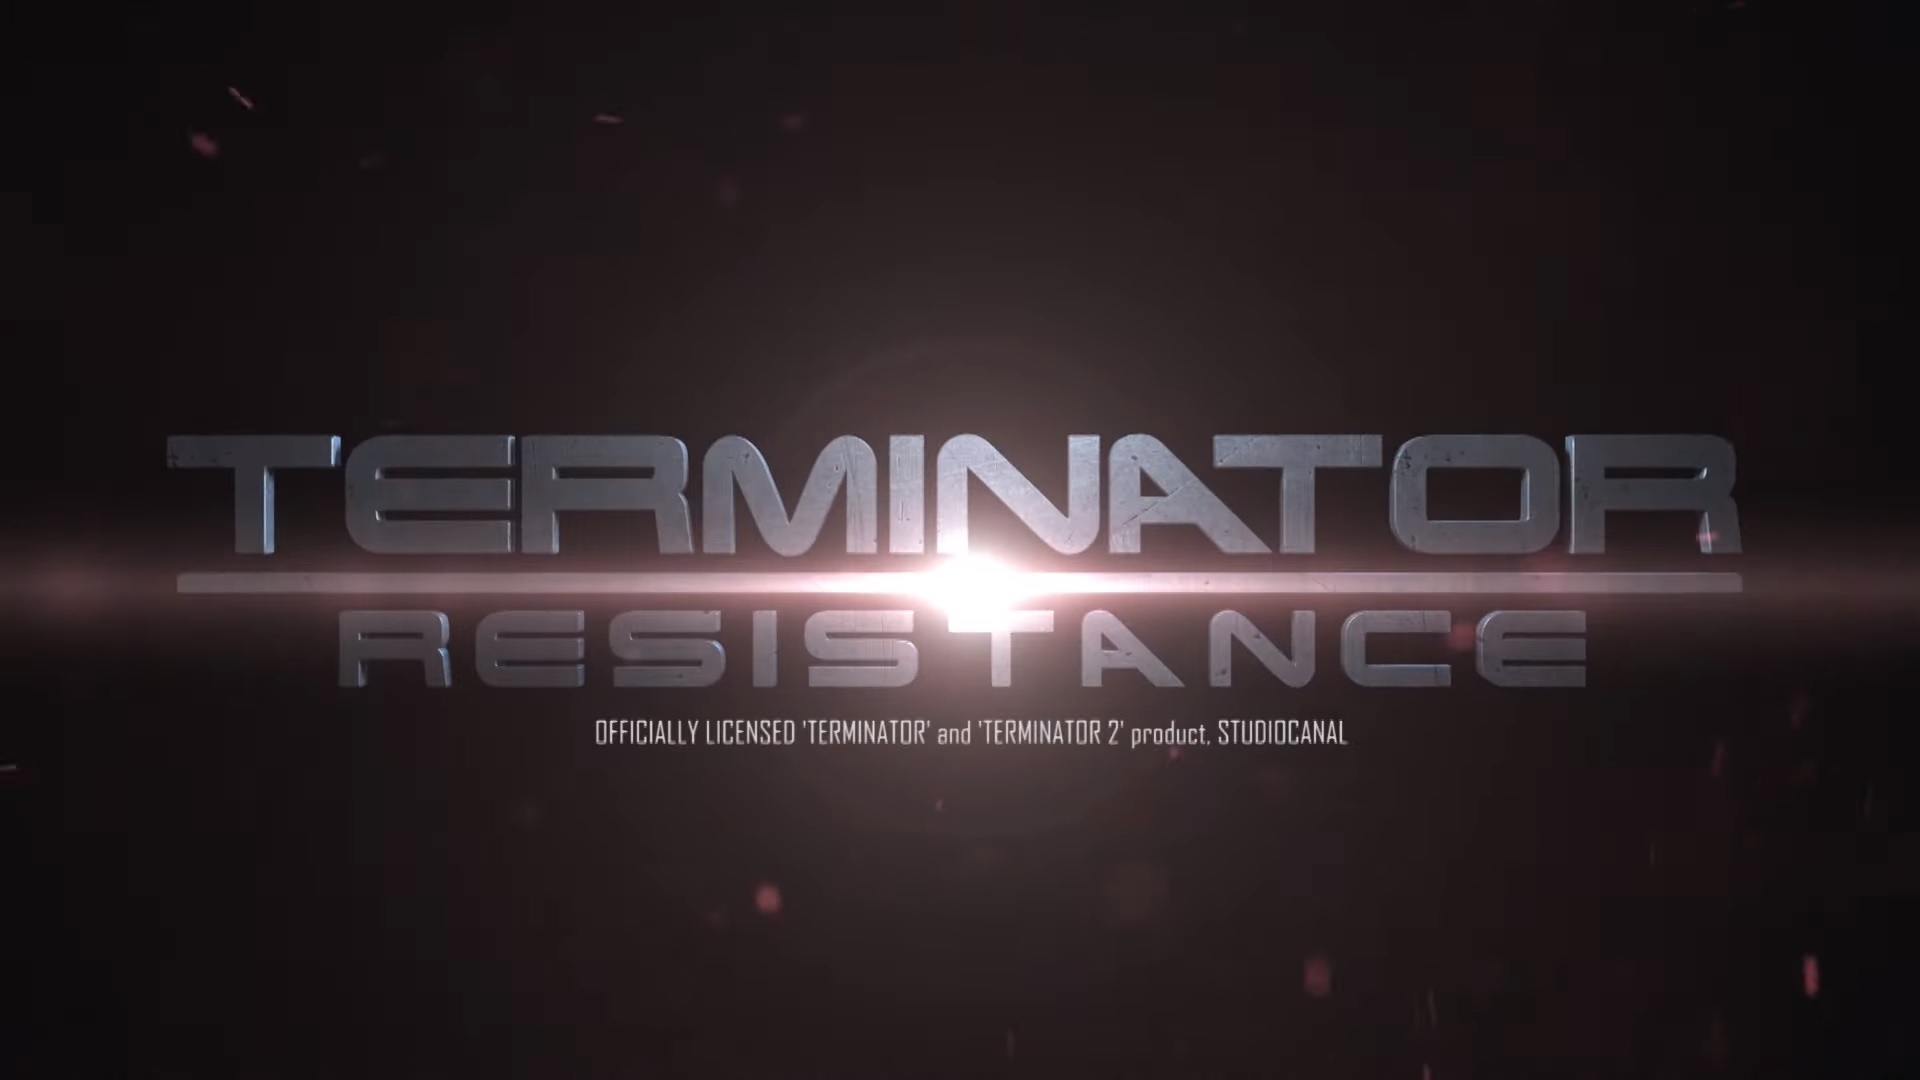 Terminator: Resistance Looks To Be Disappointing